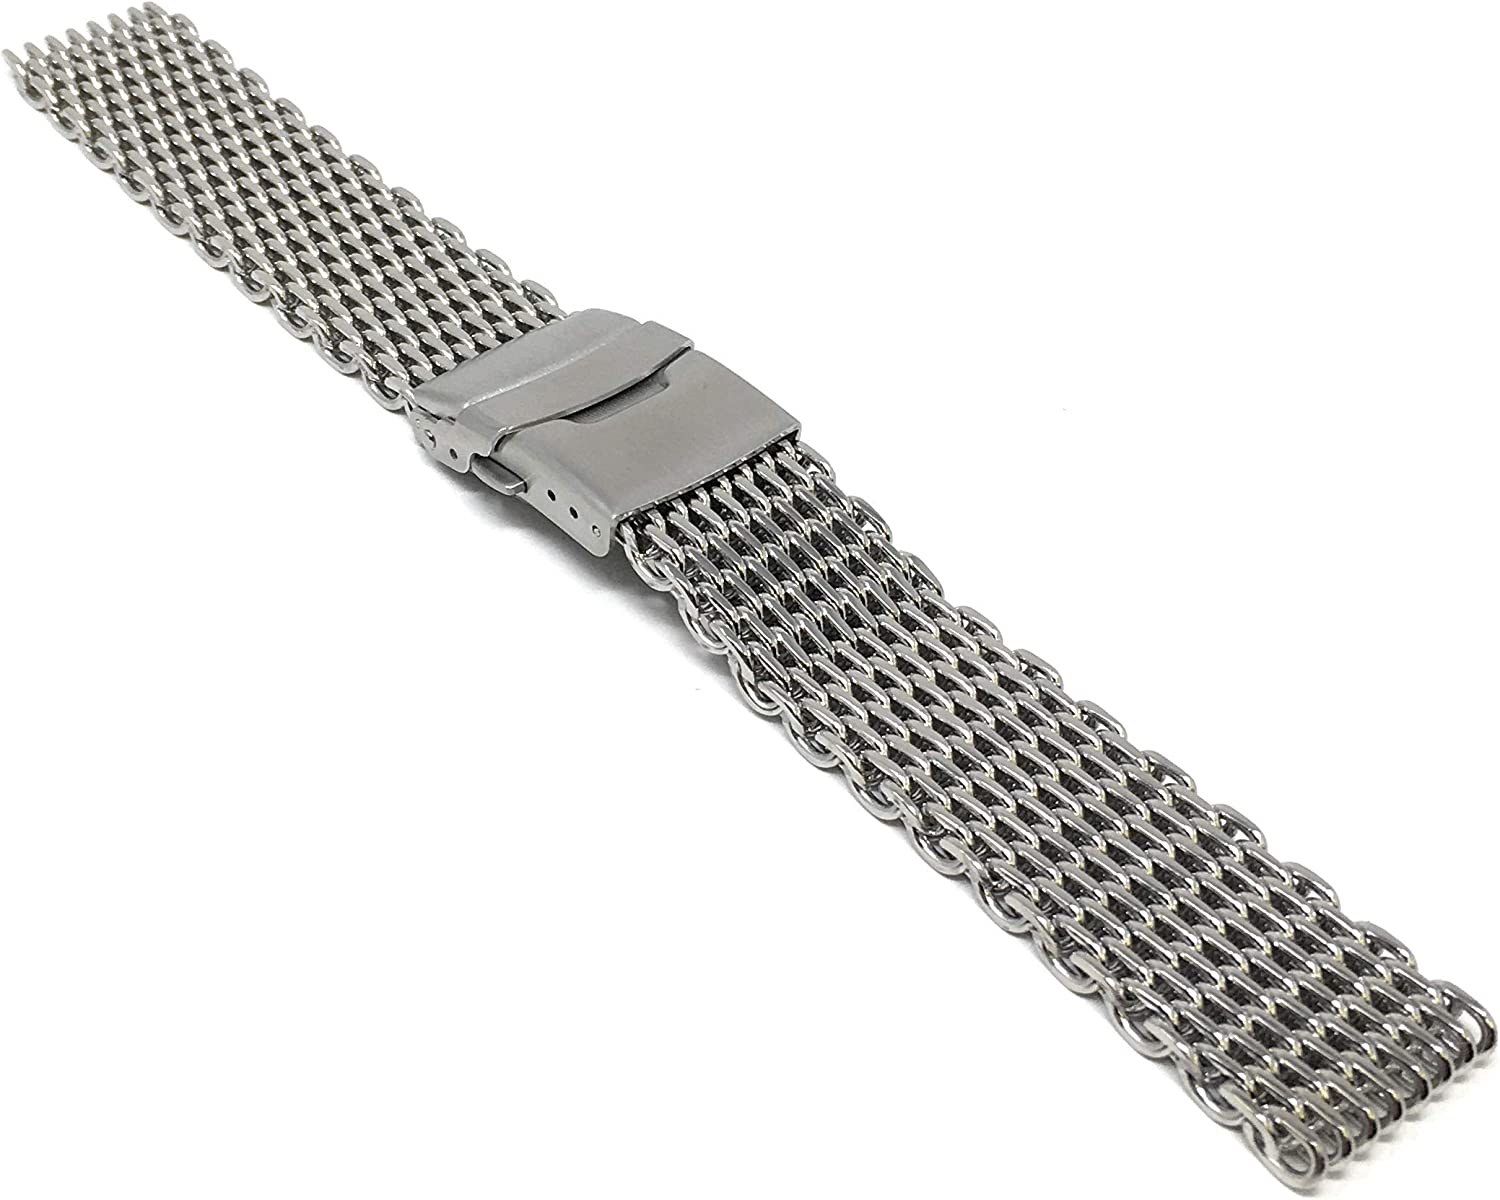 Bandini Stainless Steel Shark Mesh Dive Watch Band Bracelet - Metal Shark Mesh Watch Strap - Milanese - Double Lock Button Diver Clasp, 20mm and 22mm